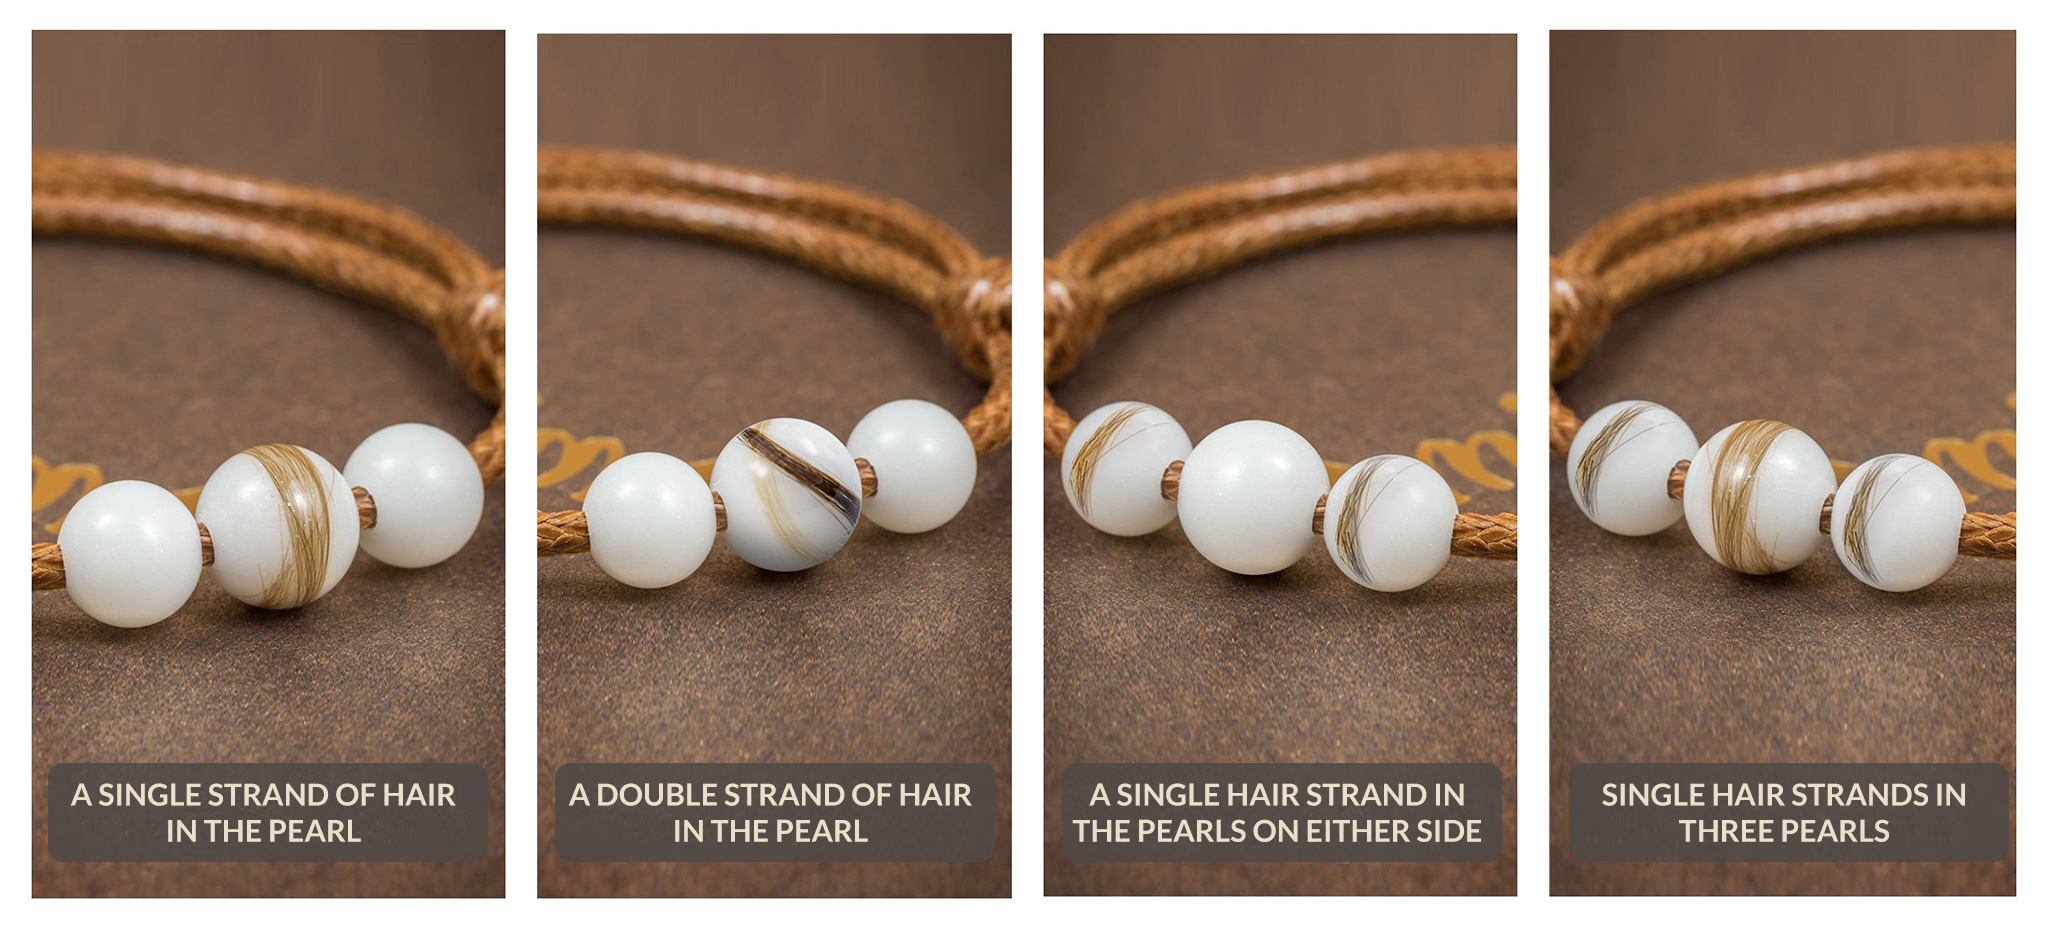 Hair strands in the pearl/-s *